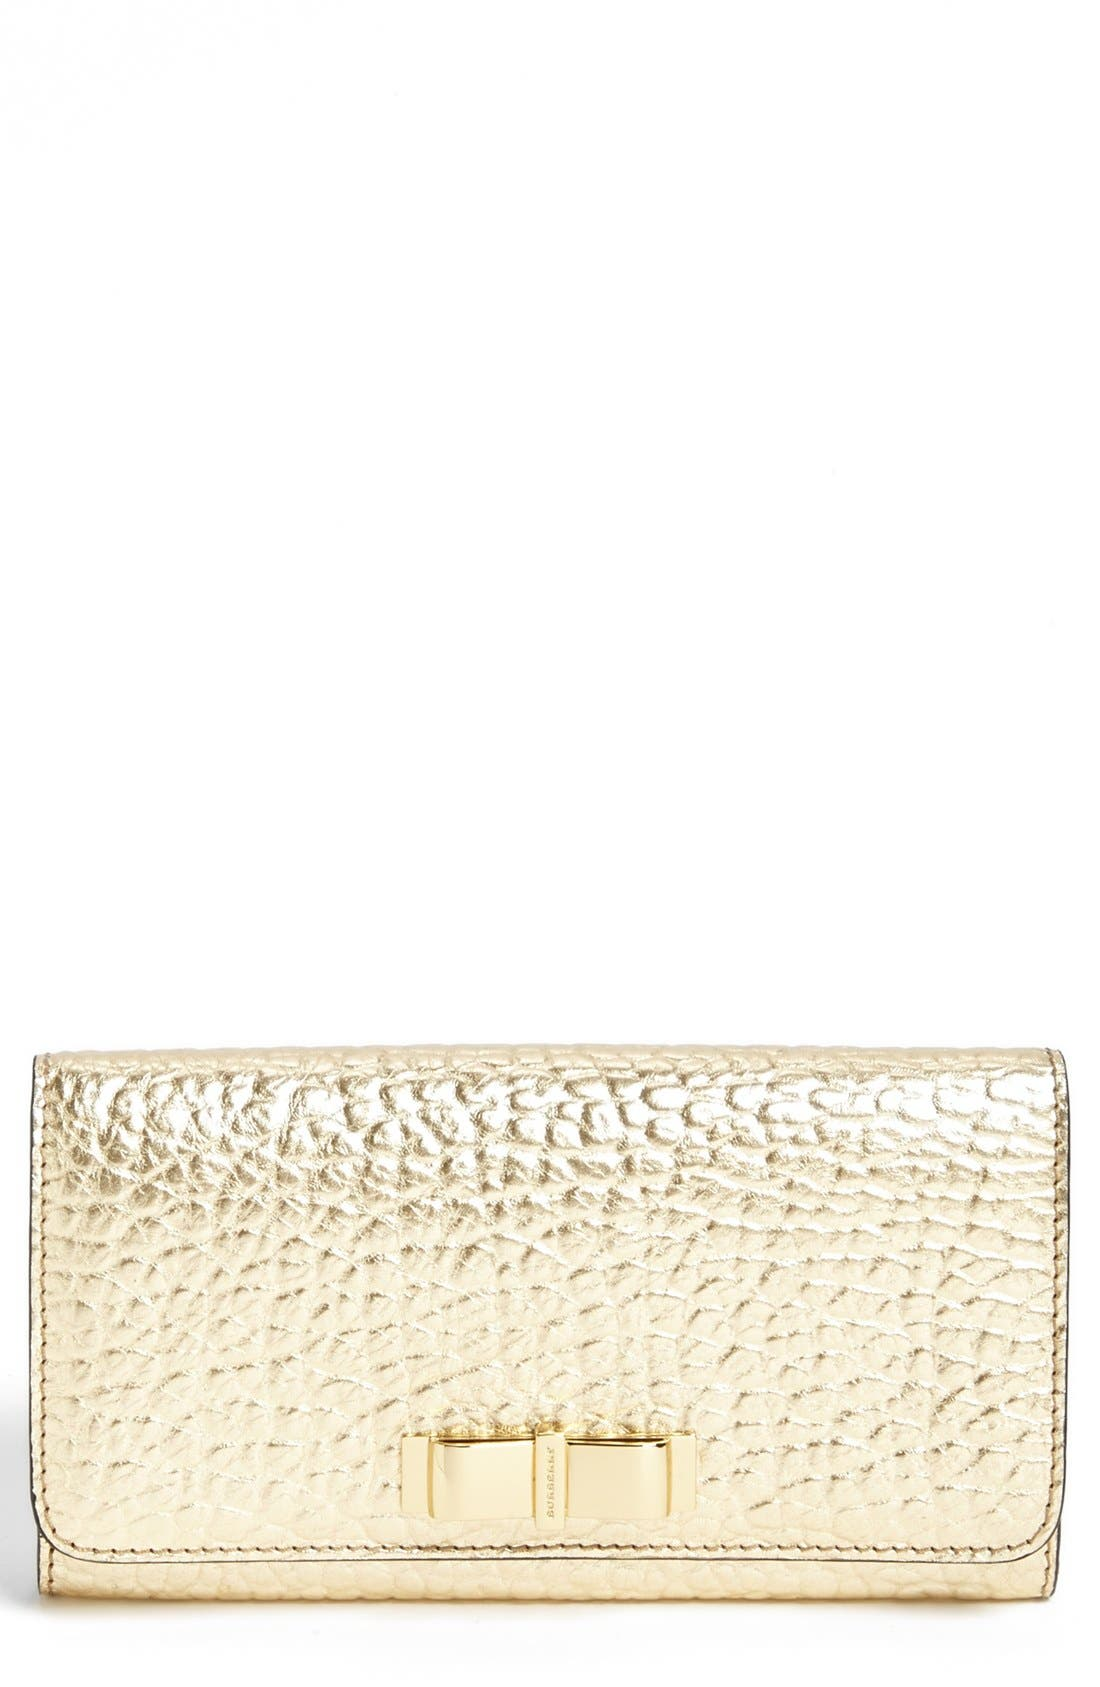 Alternate Image 1 Selected - Burberry 'Penrose' Bow Leather Wallet